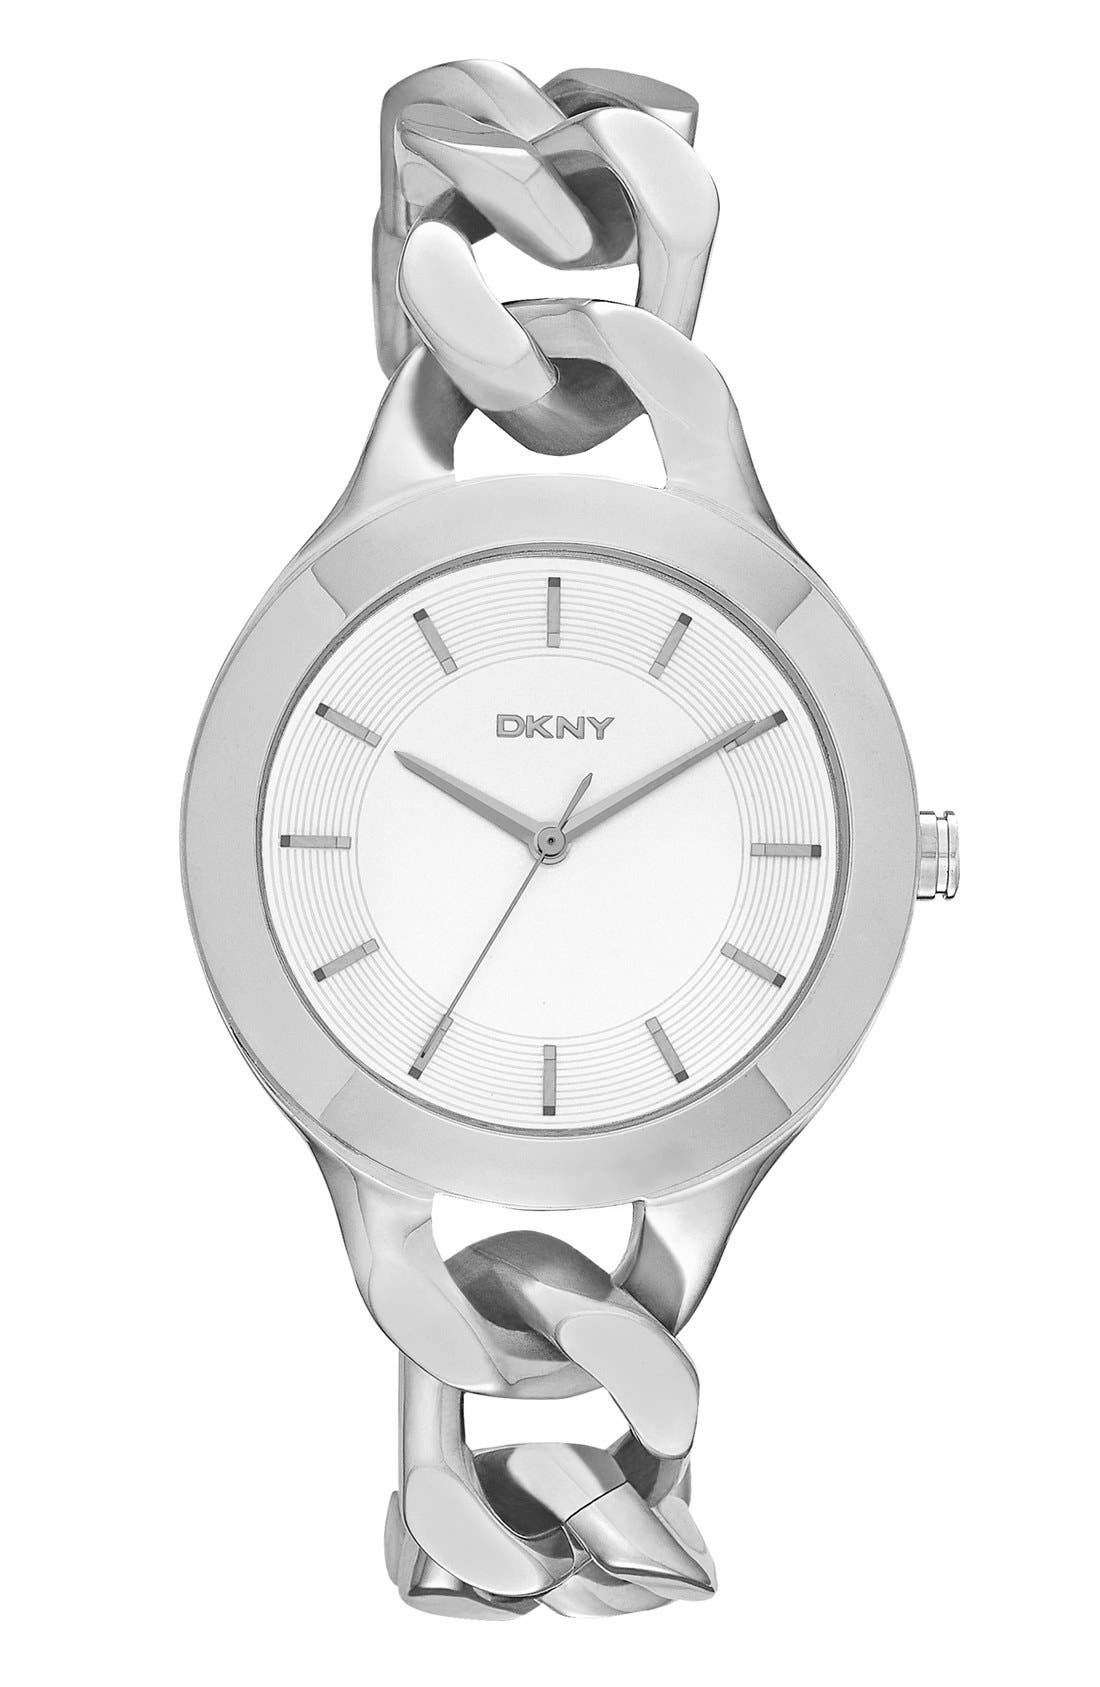 Main Image - DKNY 'Chambers' Round Chain Bracelet Watch, 36mm